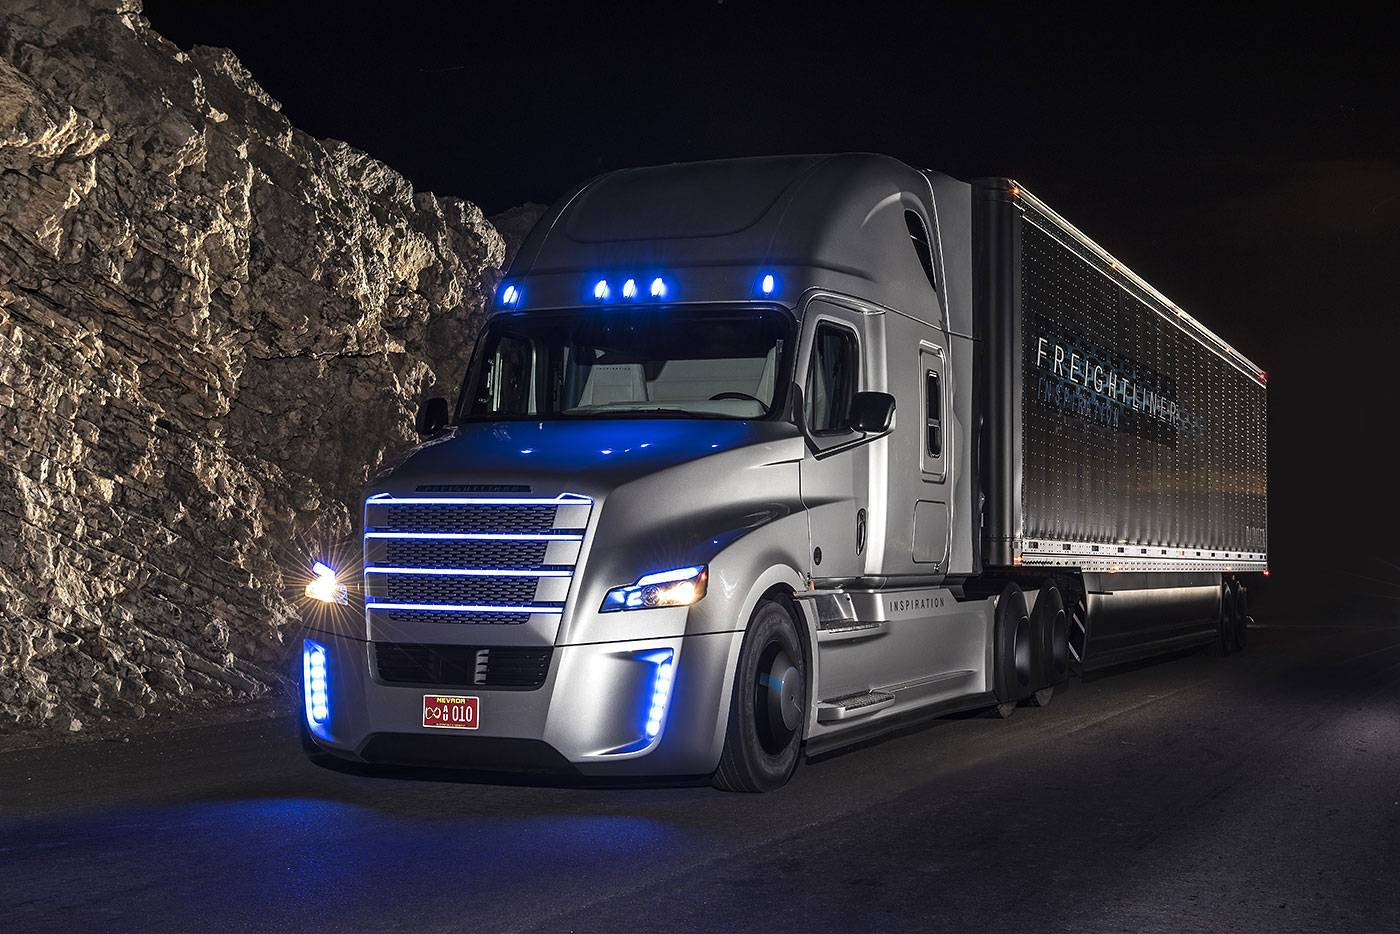 Freightliner Trucks For Sale >> Freightliner Unveils First Self-Driving Truck in the US